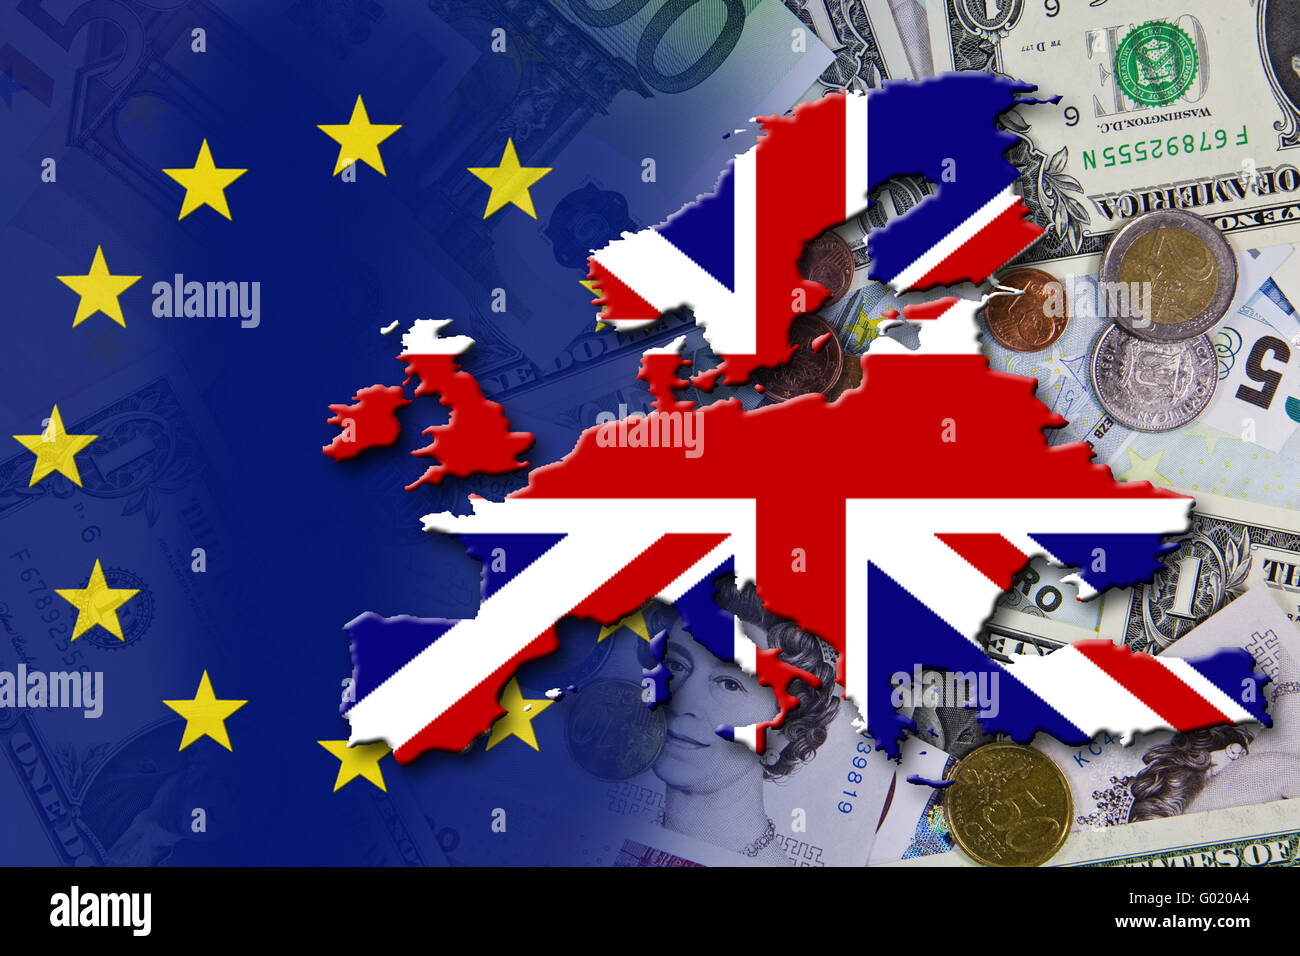 Financial and economic crisis in the euro area in Europe, the country England - Stock Image